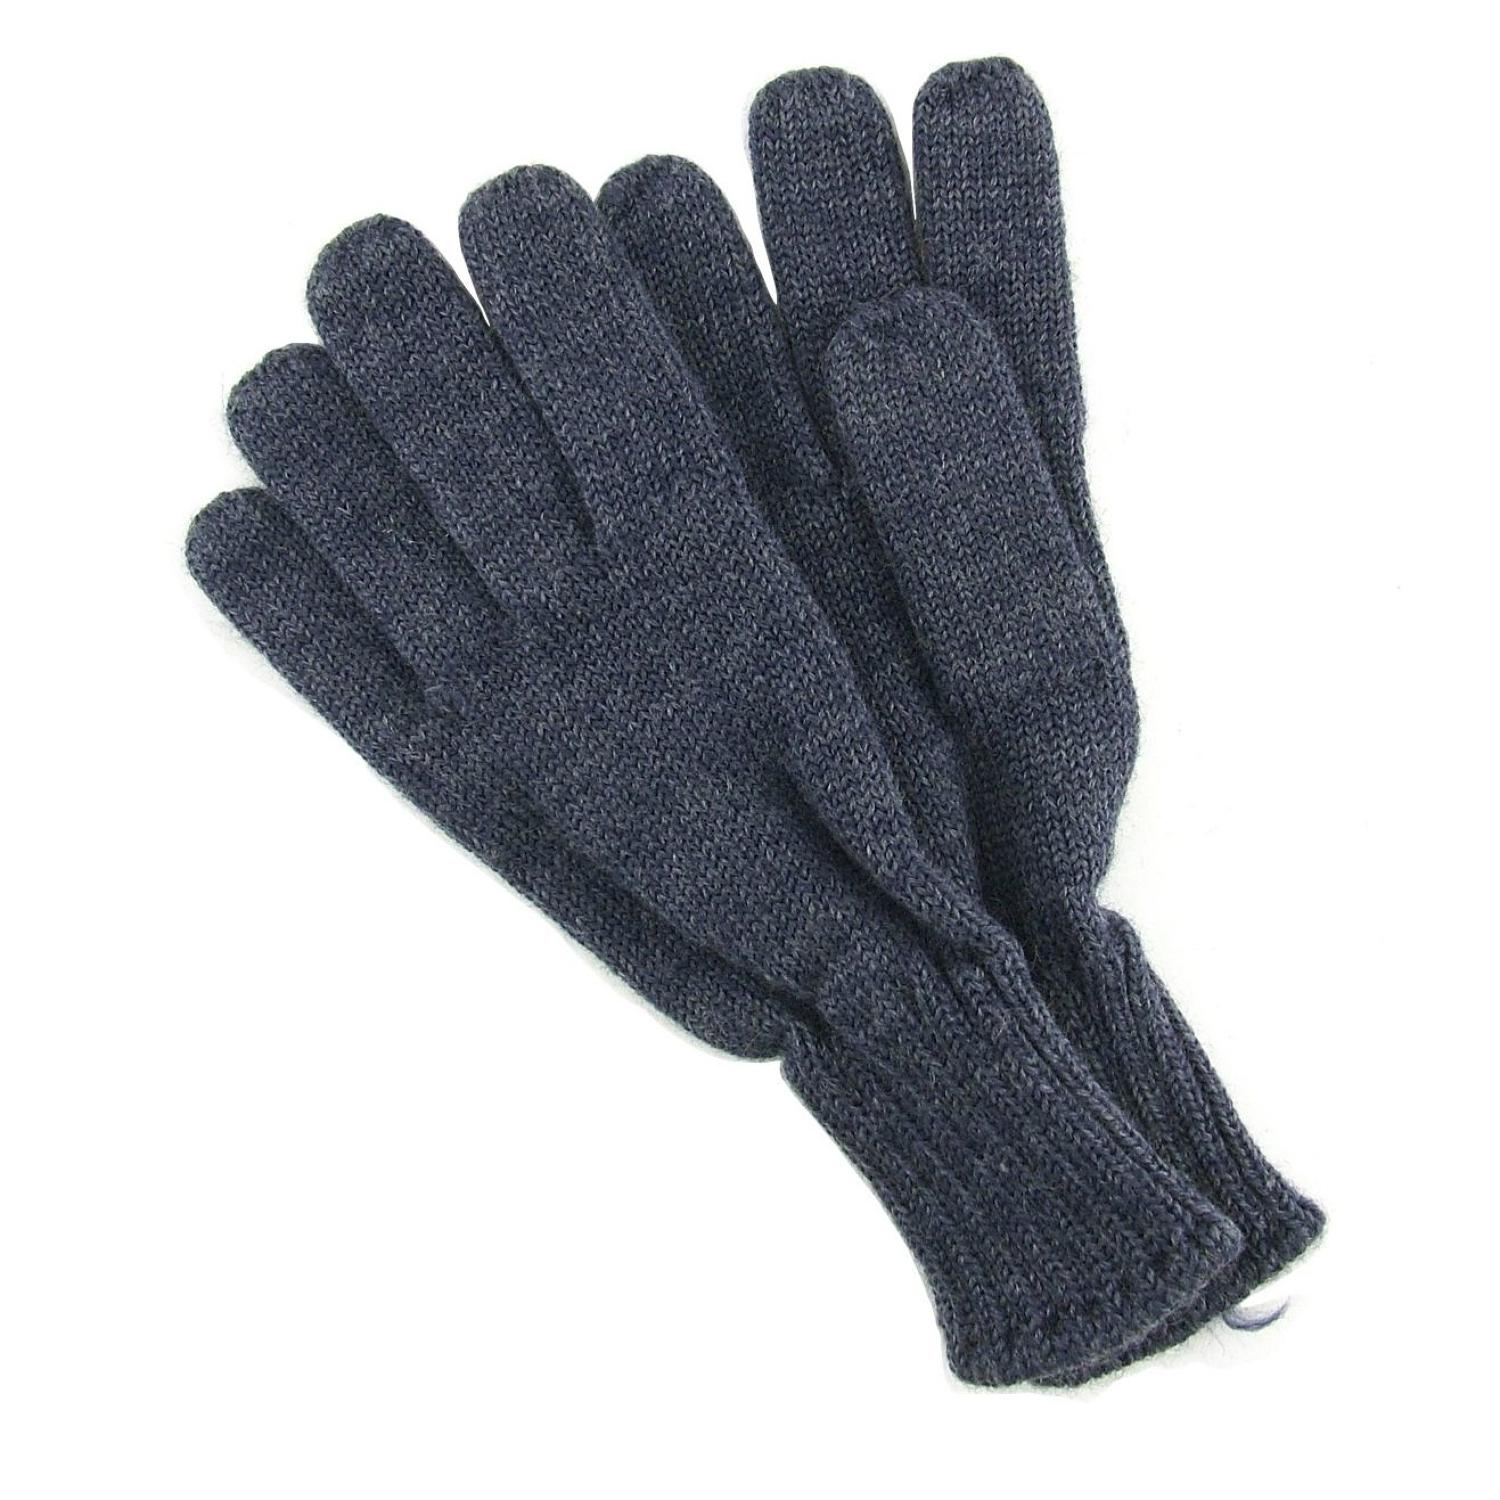 RAF woollen gloves